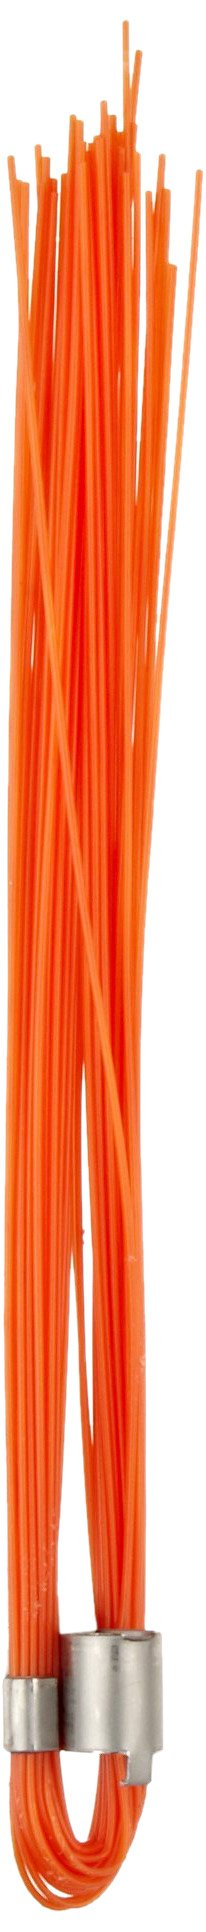 Presco OM6TX, Marking Whiskers, Orange, 6 inches in Length (Pack of 1000)